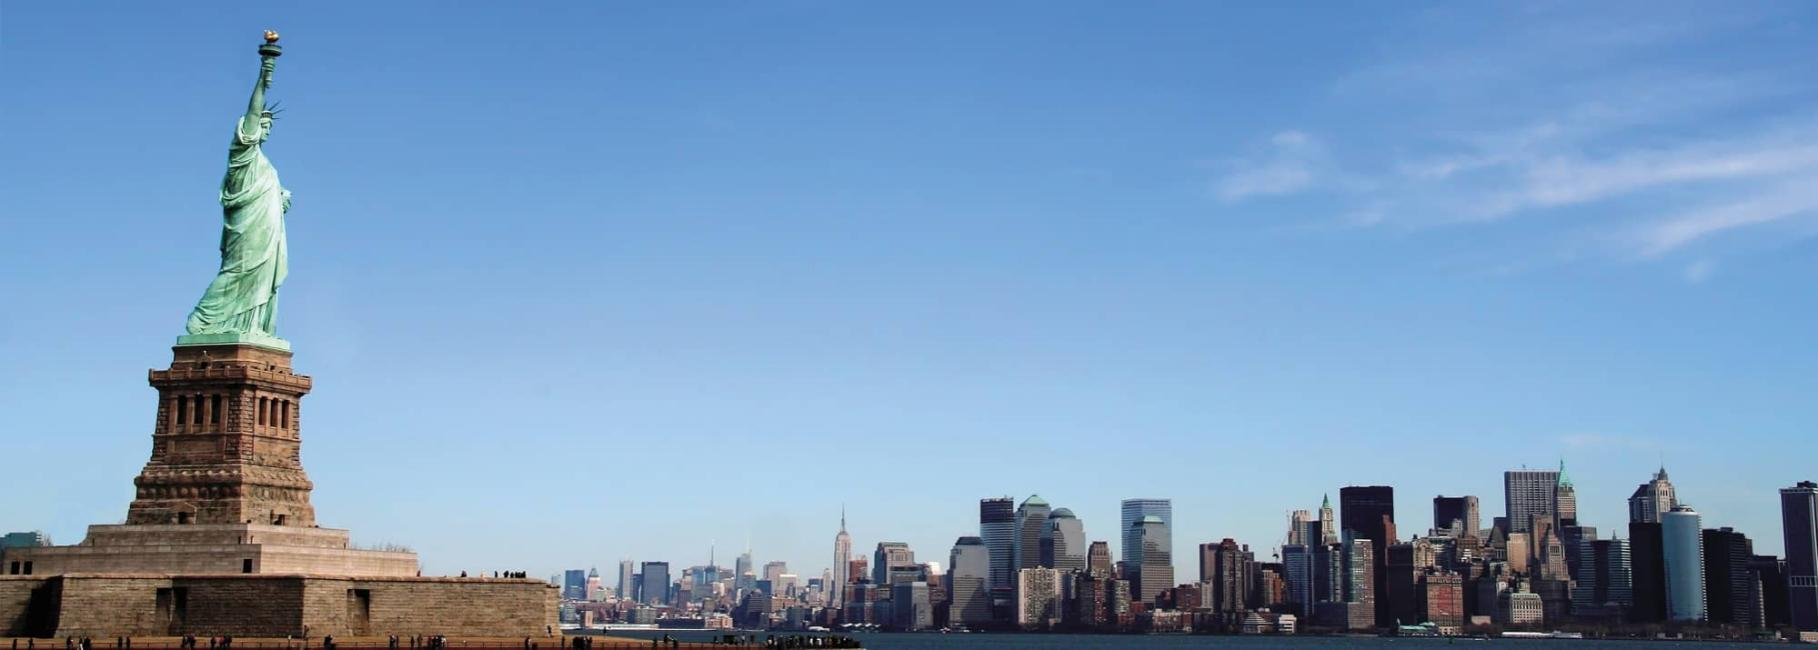 new york washington history trip header nst